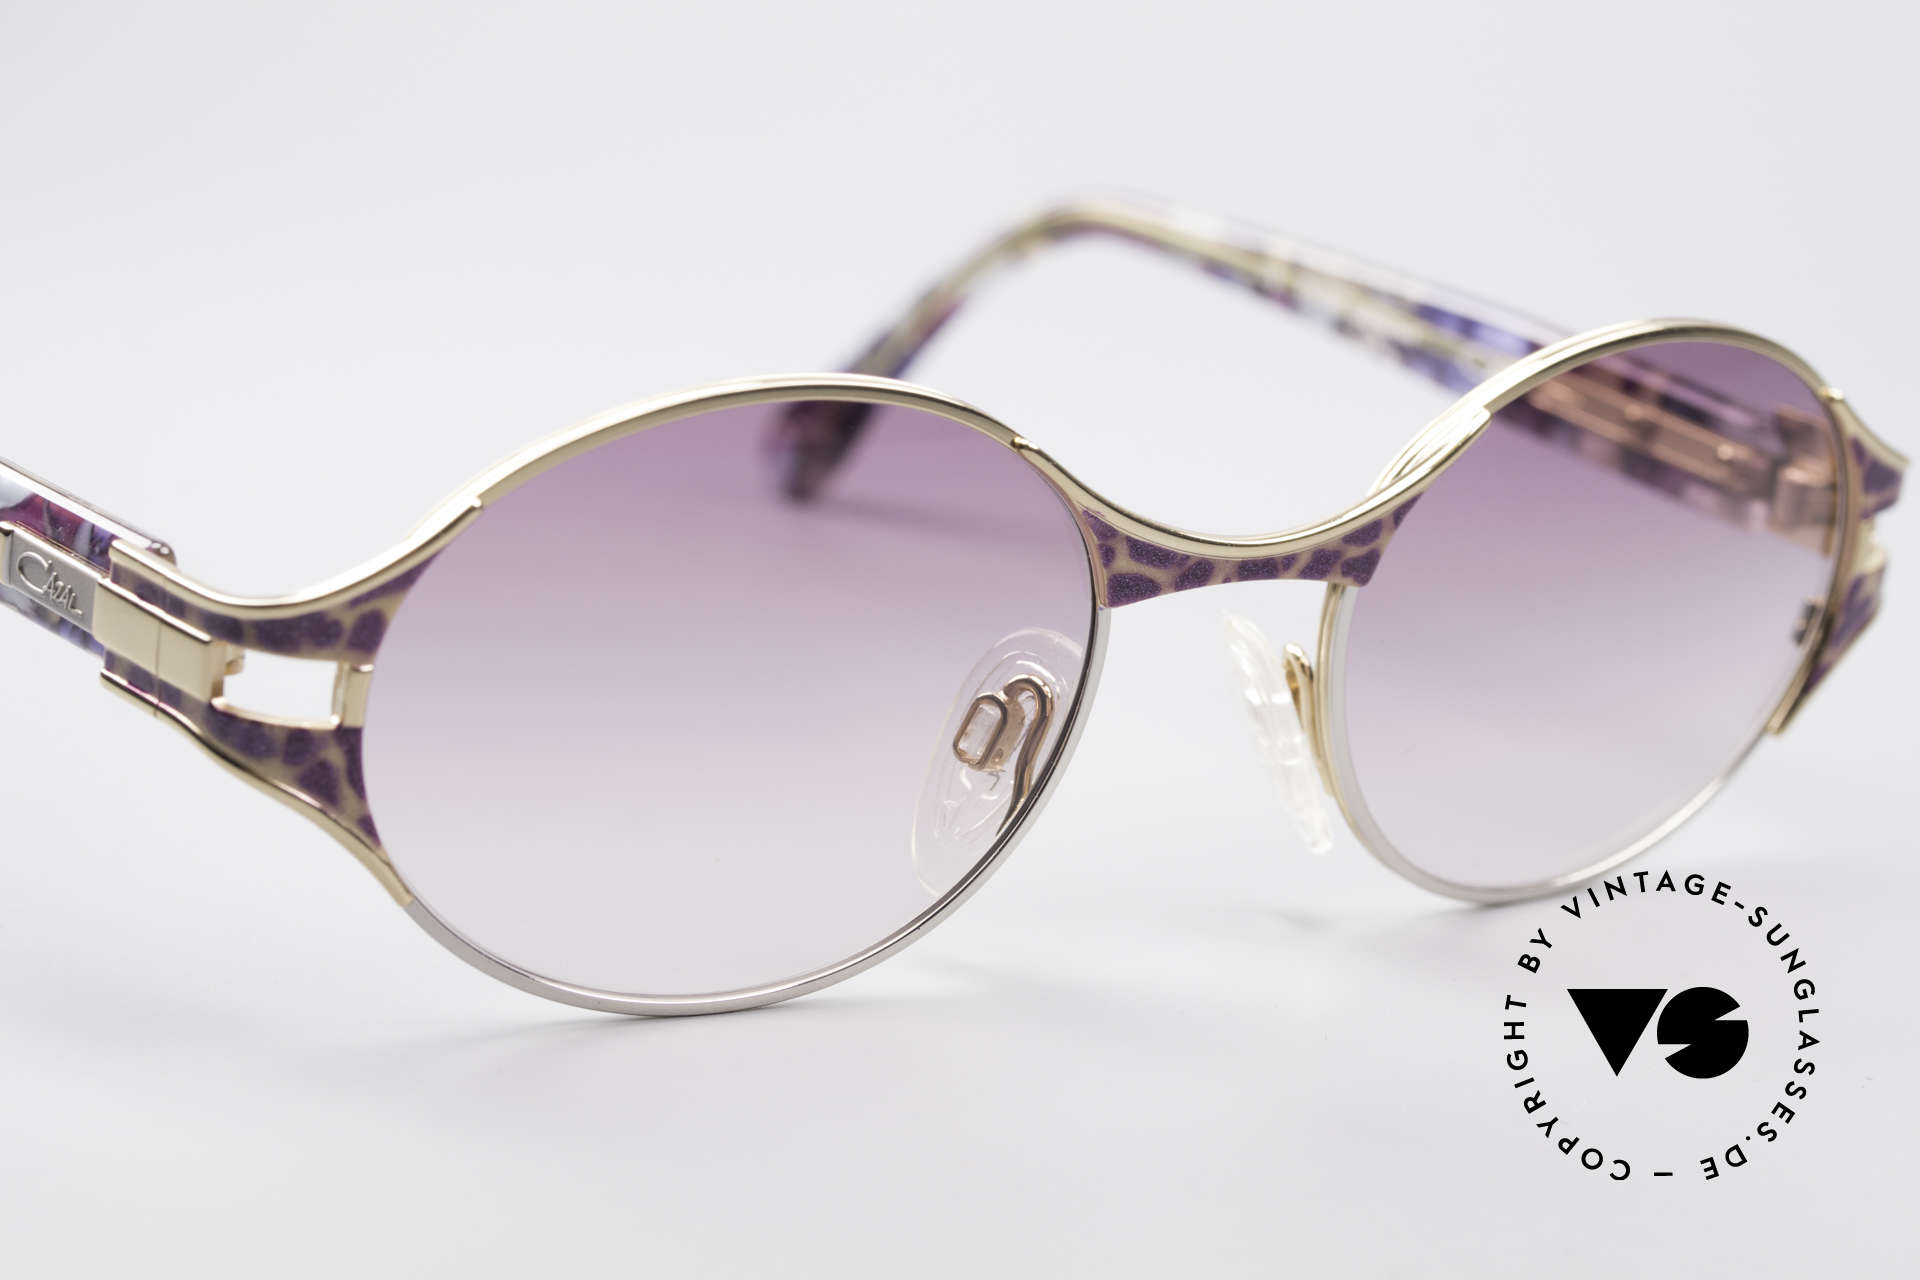 Cazal 281 Oval 90's Vintage Sunglasses, the frame is made for optical lenses or sun lenses, Made for Women